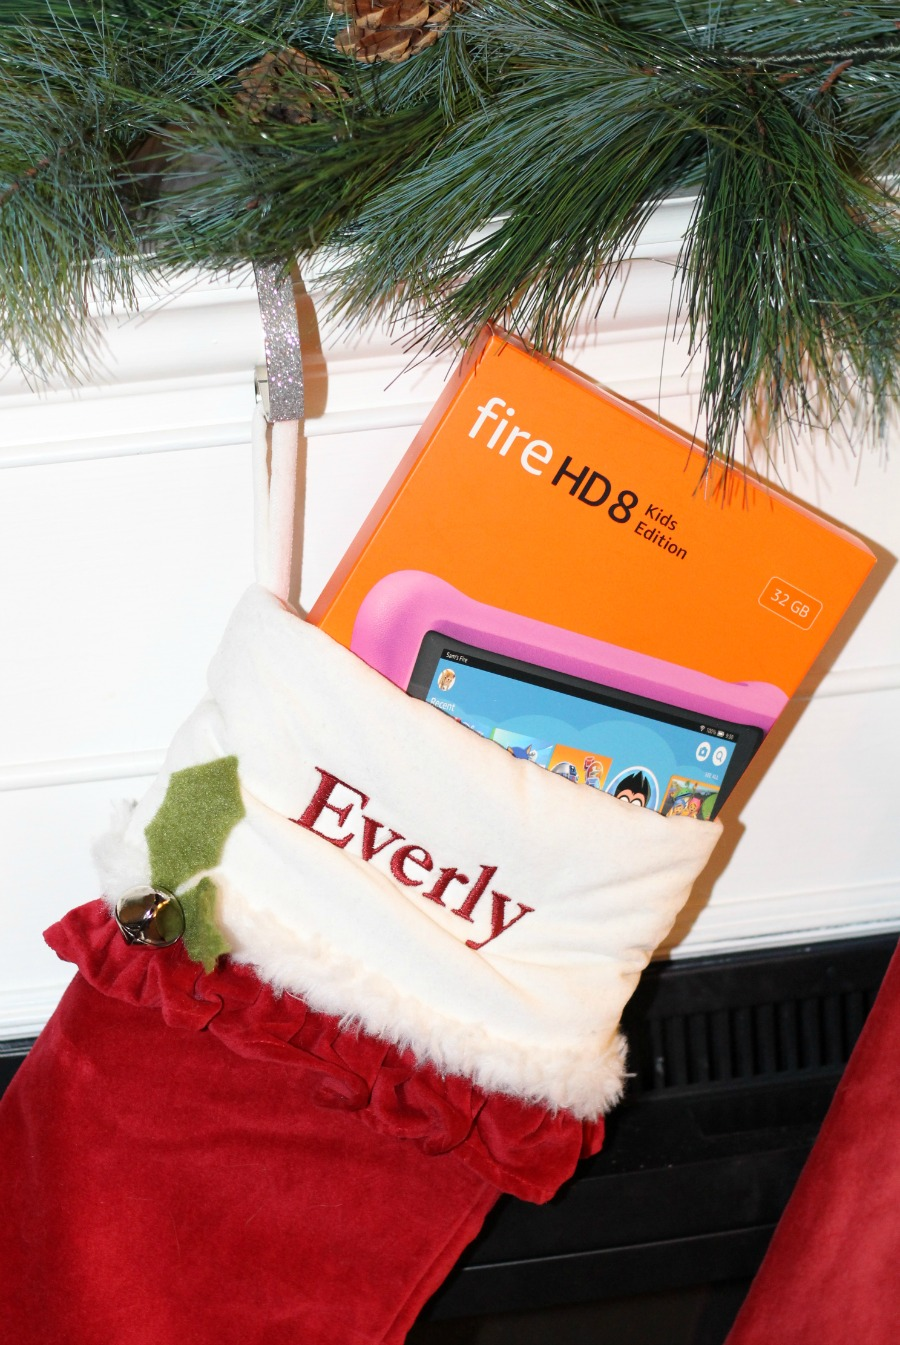 5 Ways a Fire HD 8 Kids Edition Tablet Can Enhance Your Holiday Traditions